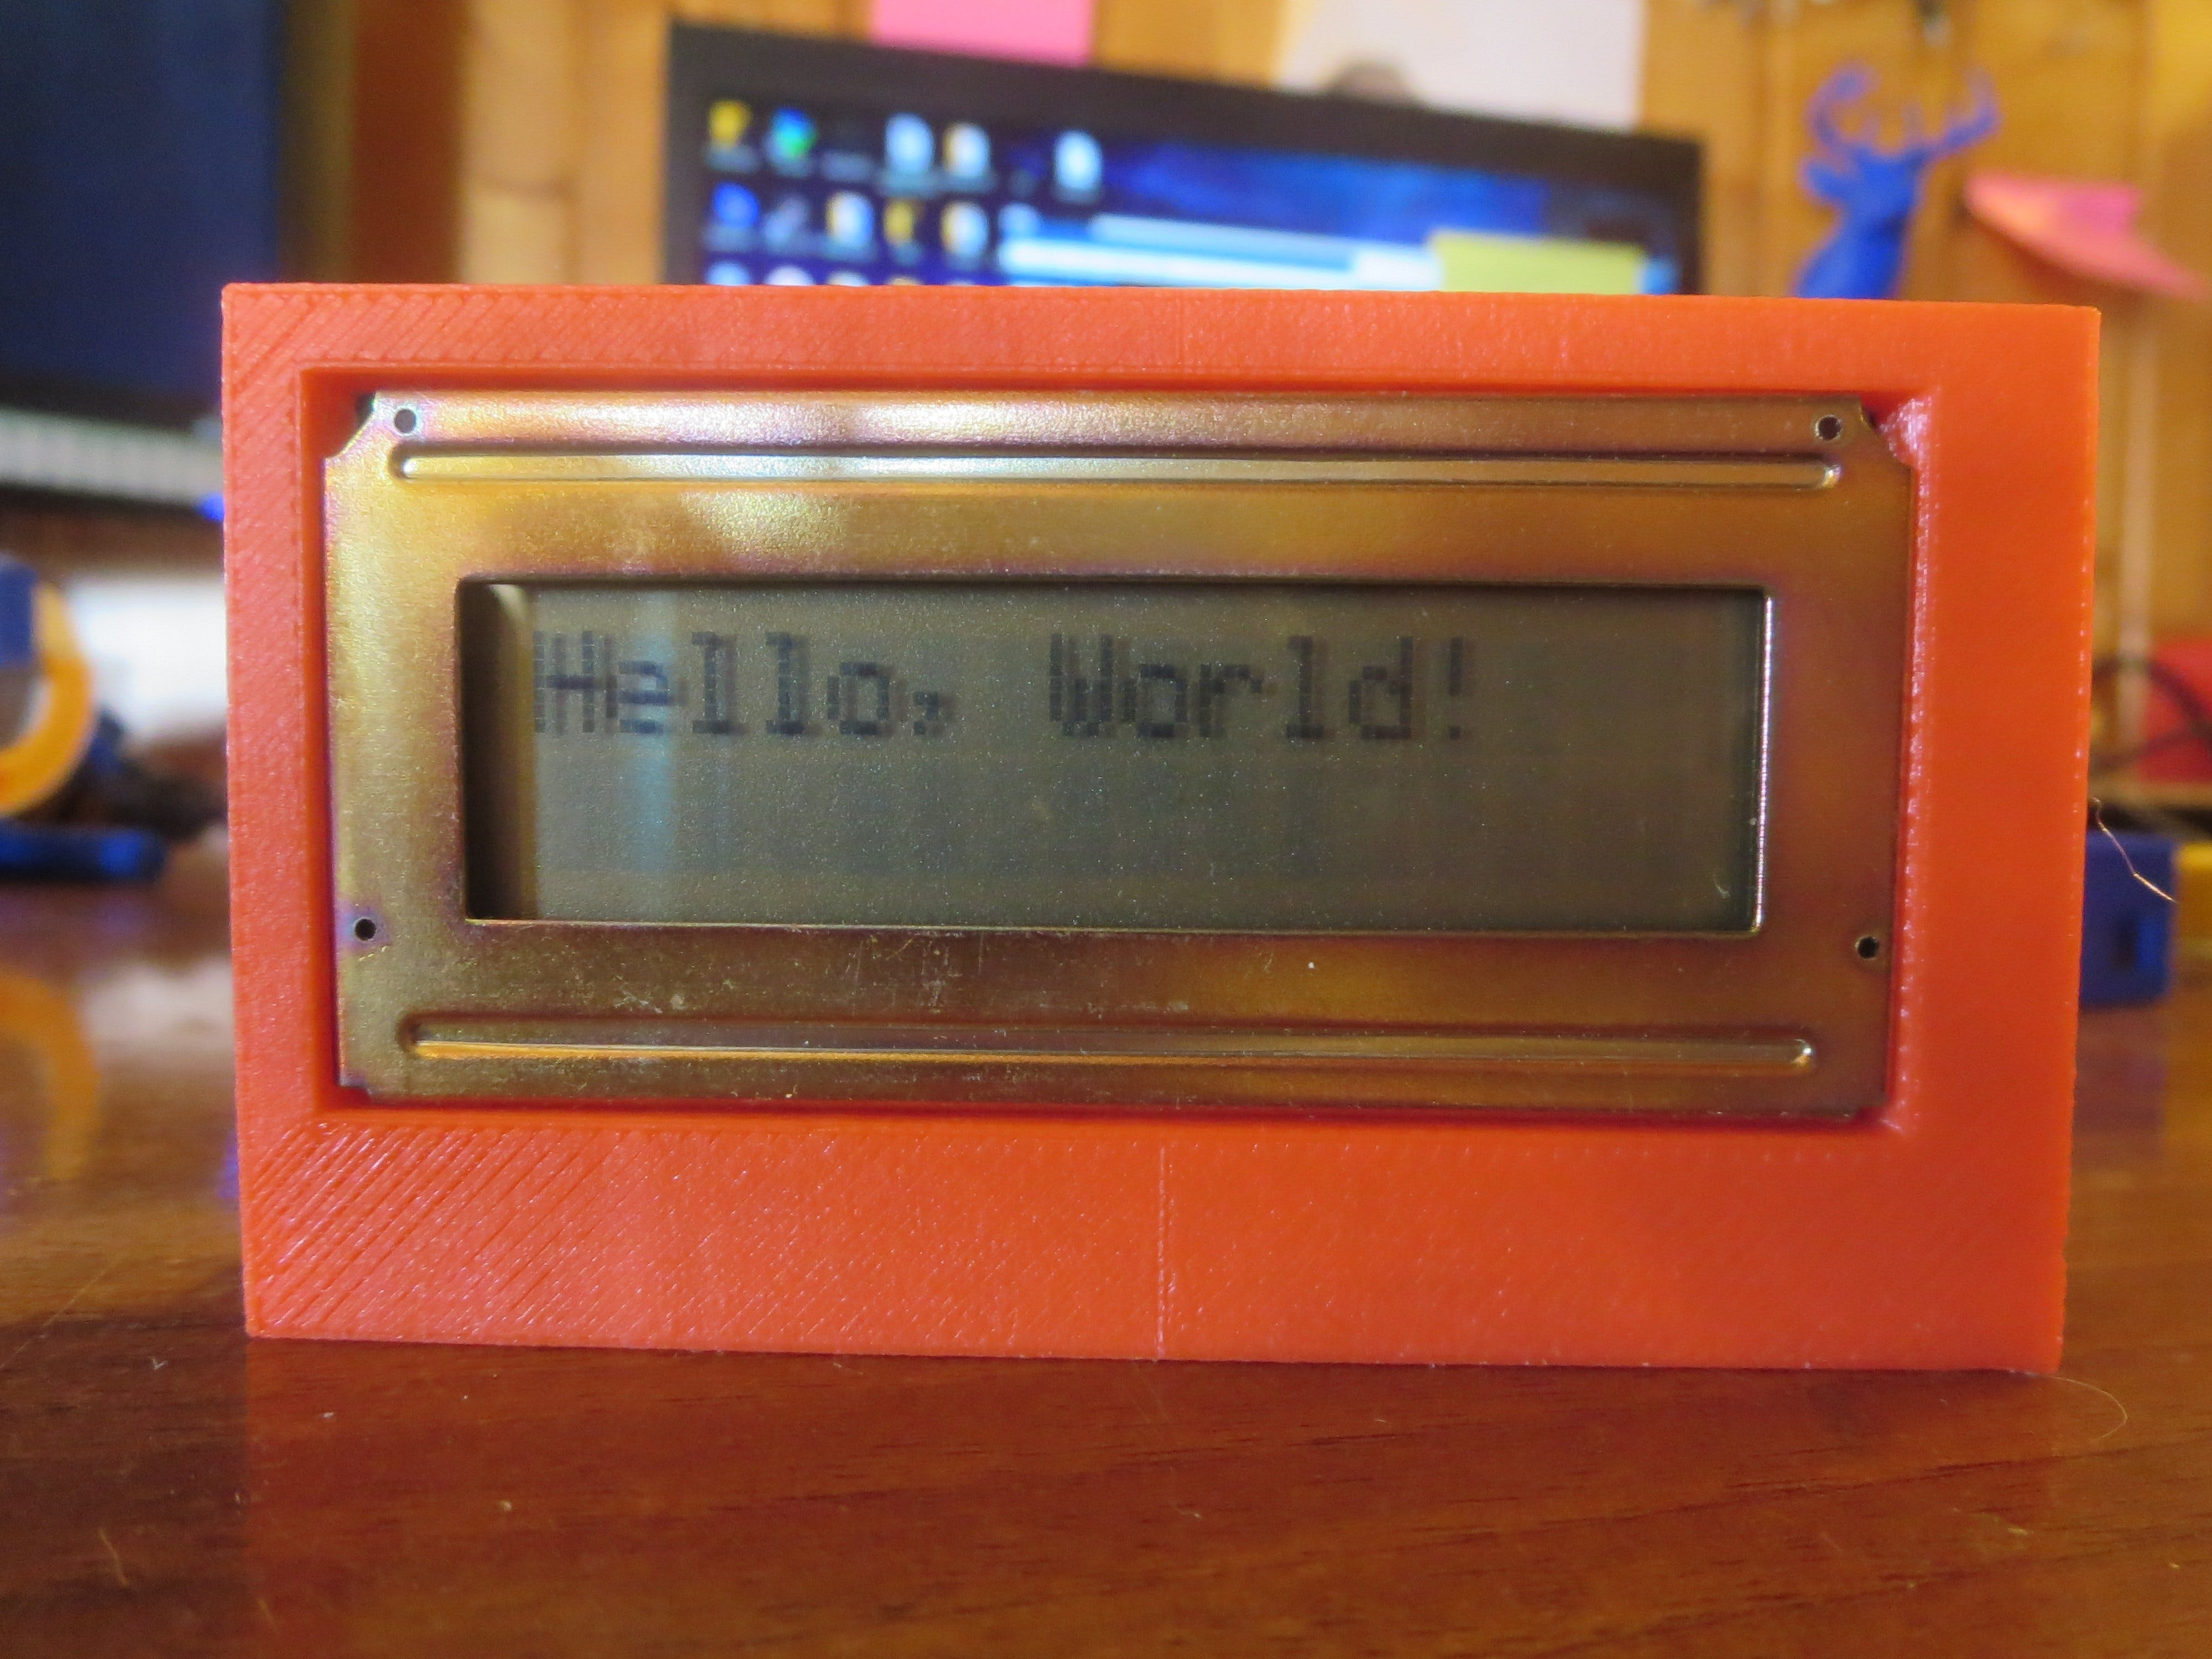 How to Use a HD44780 Based Display